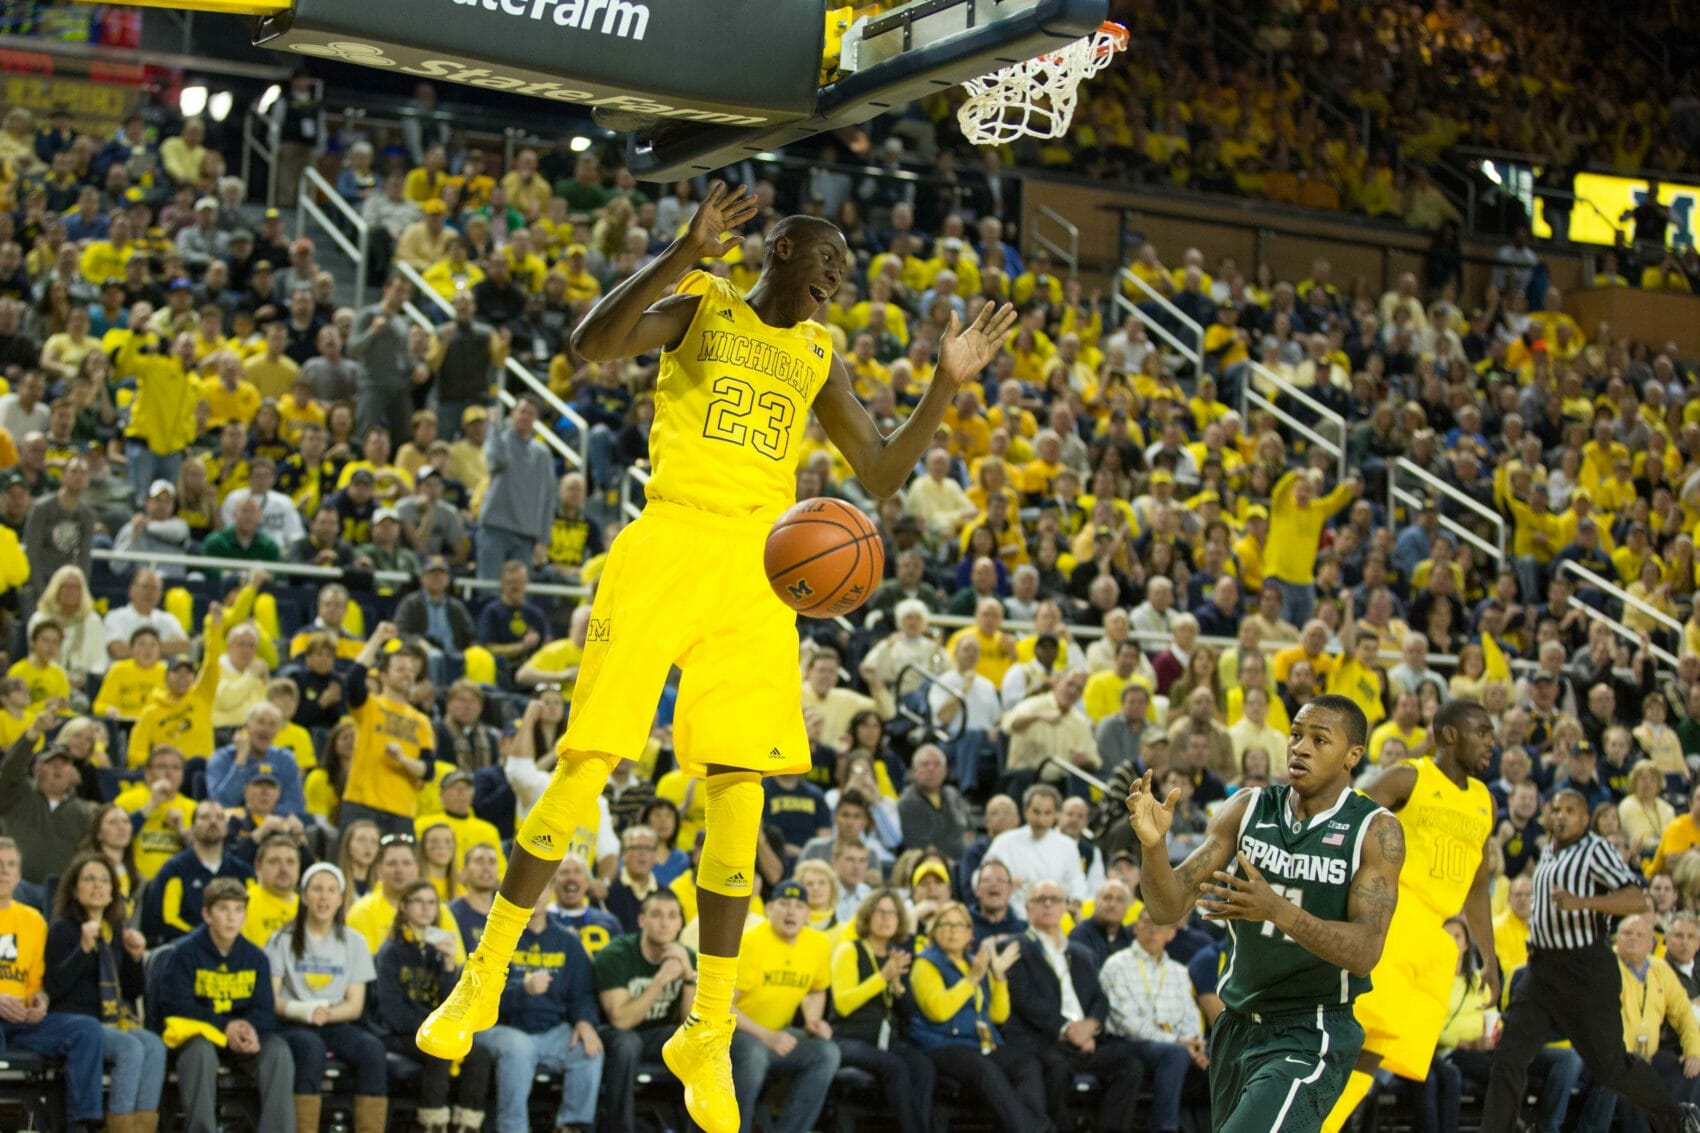 Michigan 58, Michigan State 57-4